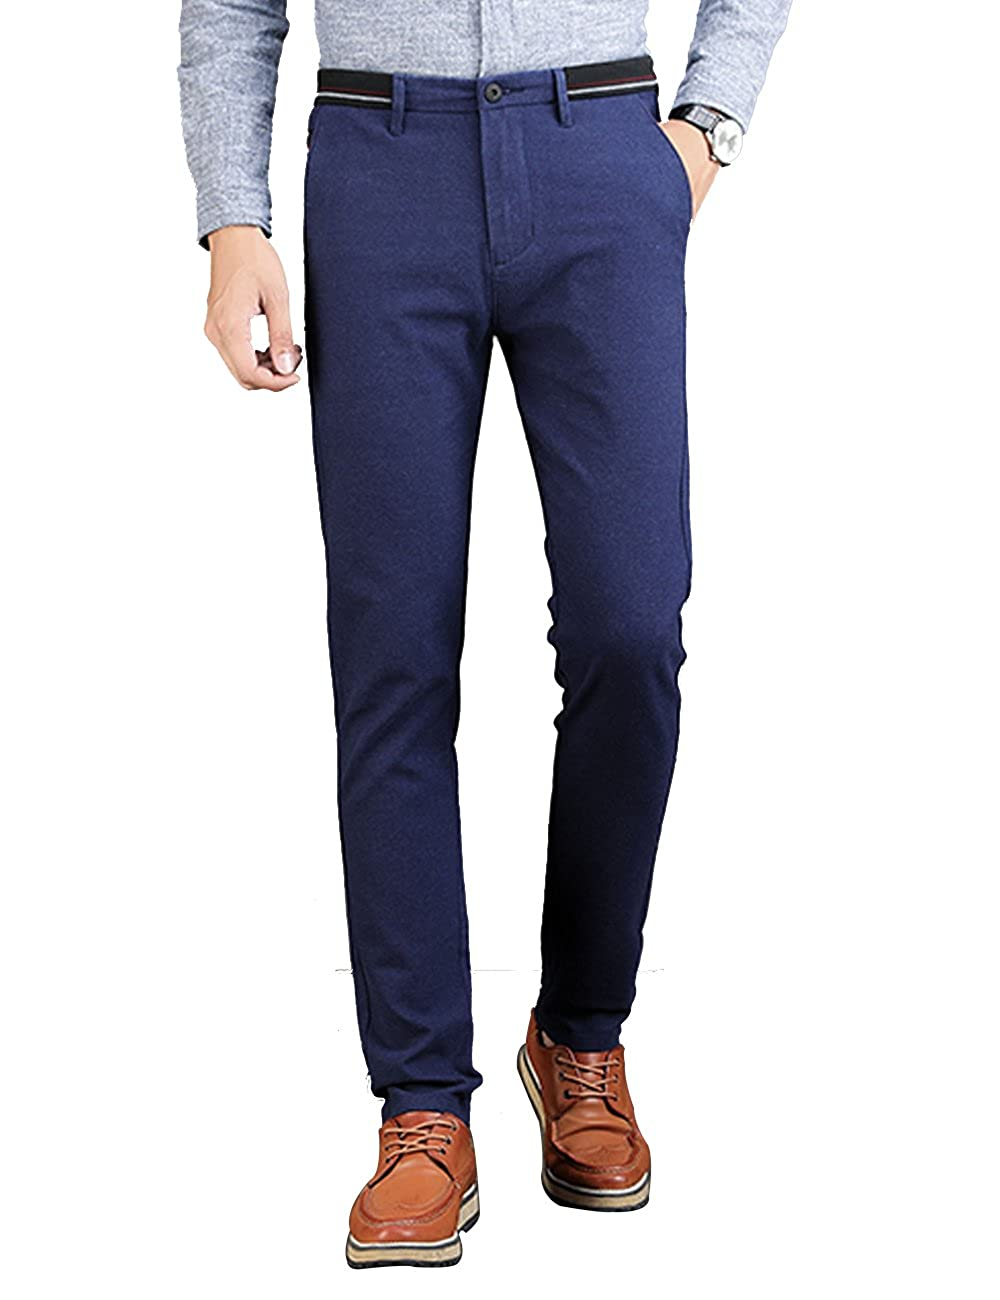 VEGORRS Men's Slim Fit Stretch Slim Fit Casual Pants